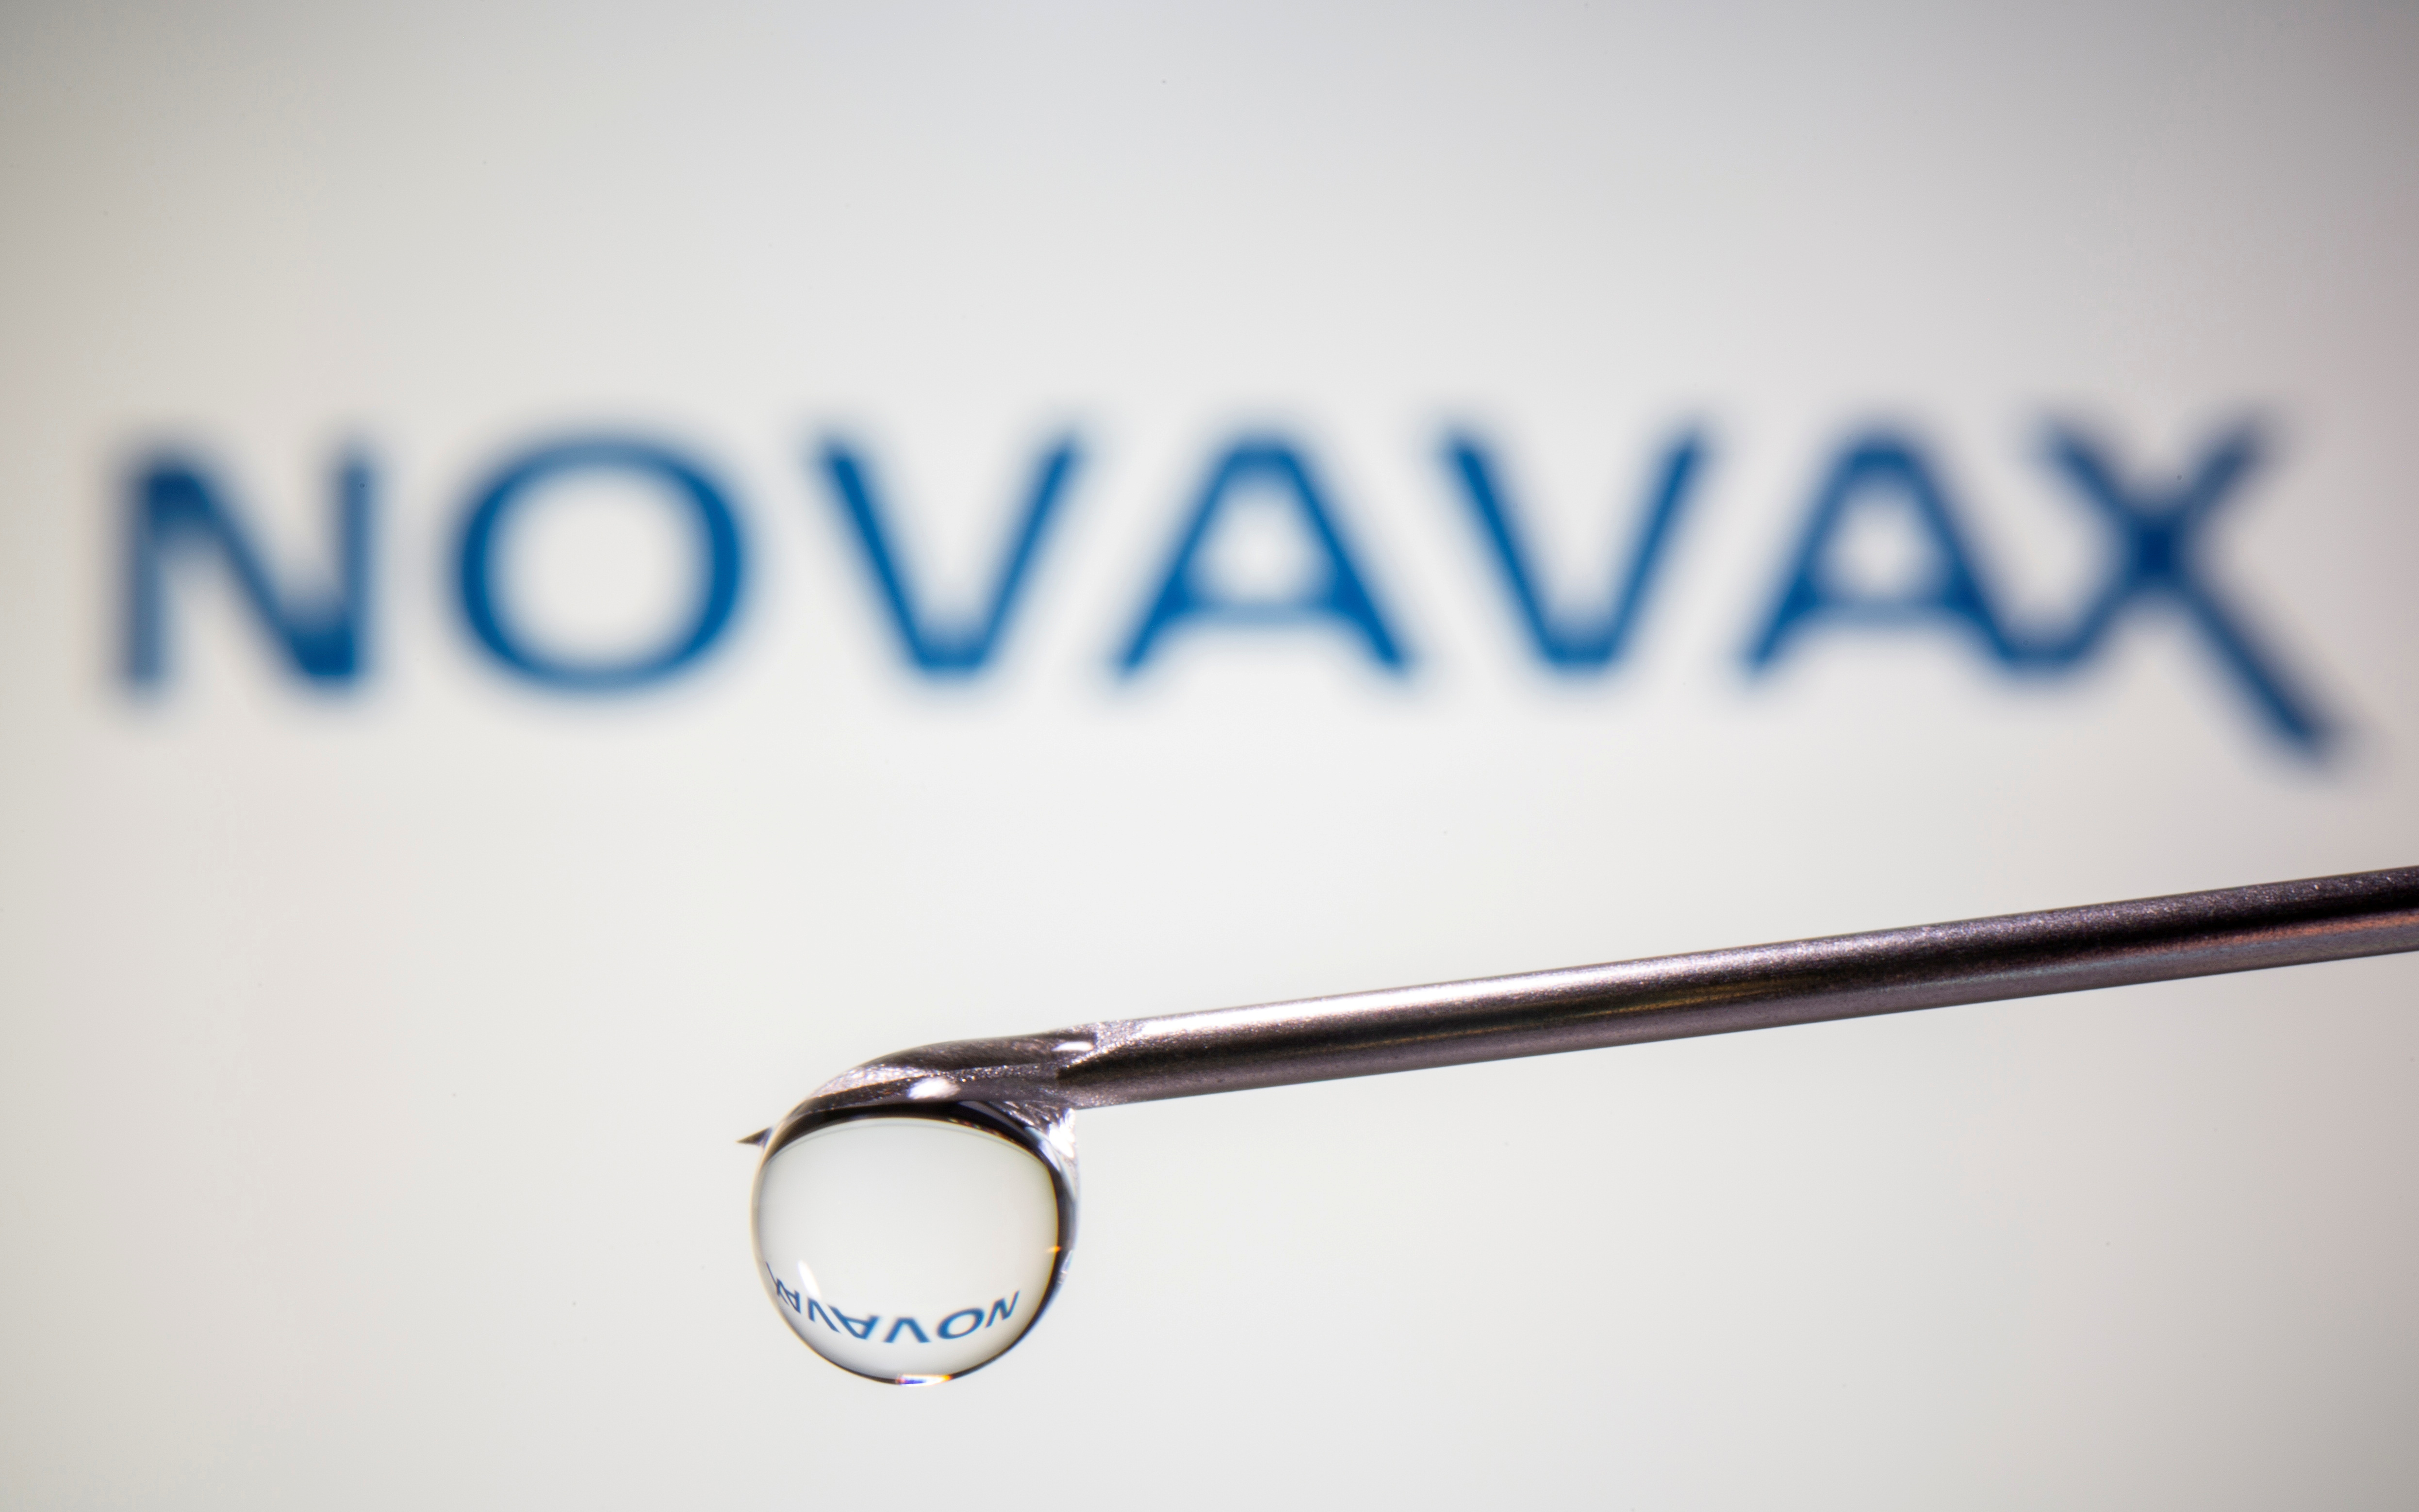 A Novavax logo is reflected in a drop on a syringe needle in this illustration taken November 9, 2020. REUTERS/Dado Ruvic/Illustration